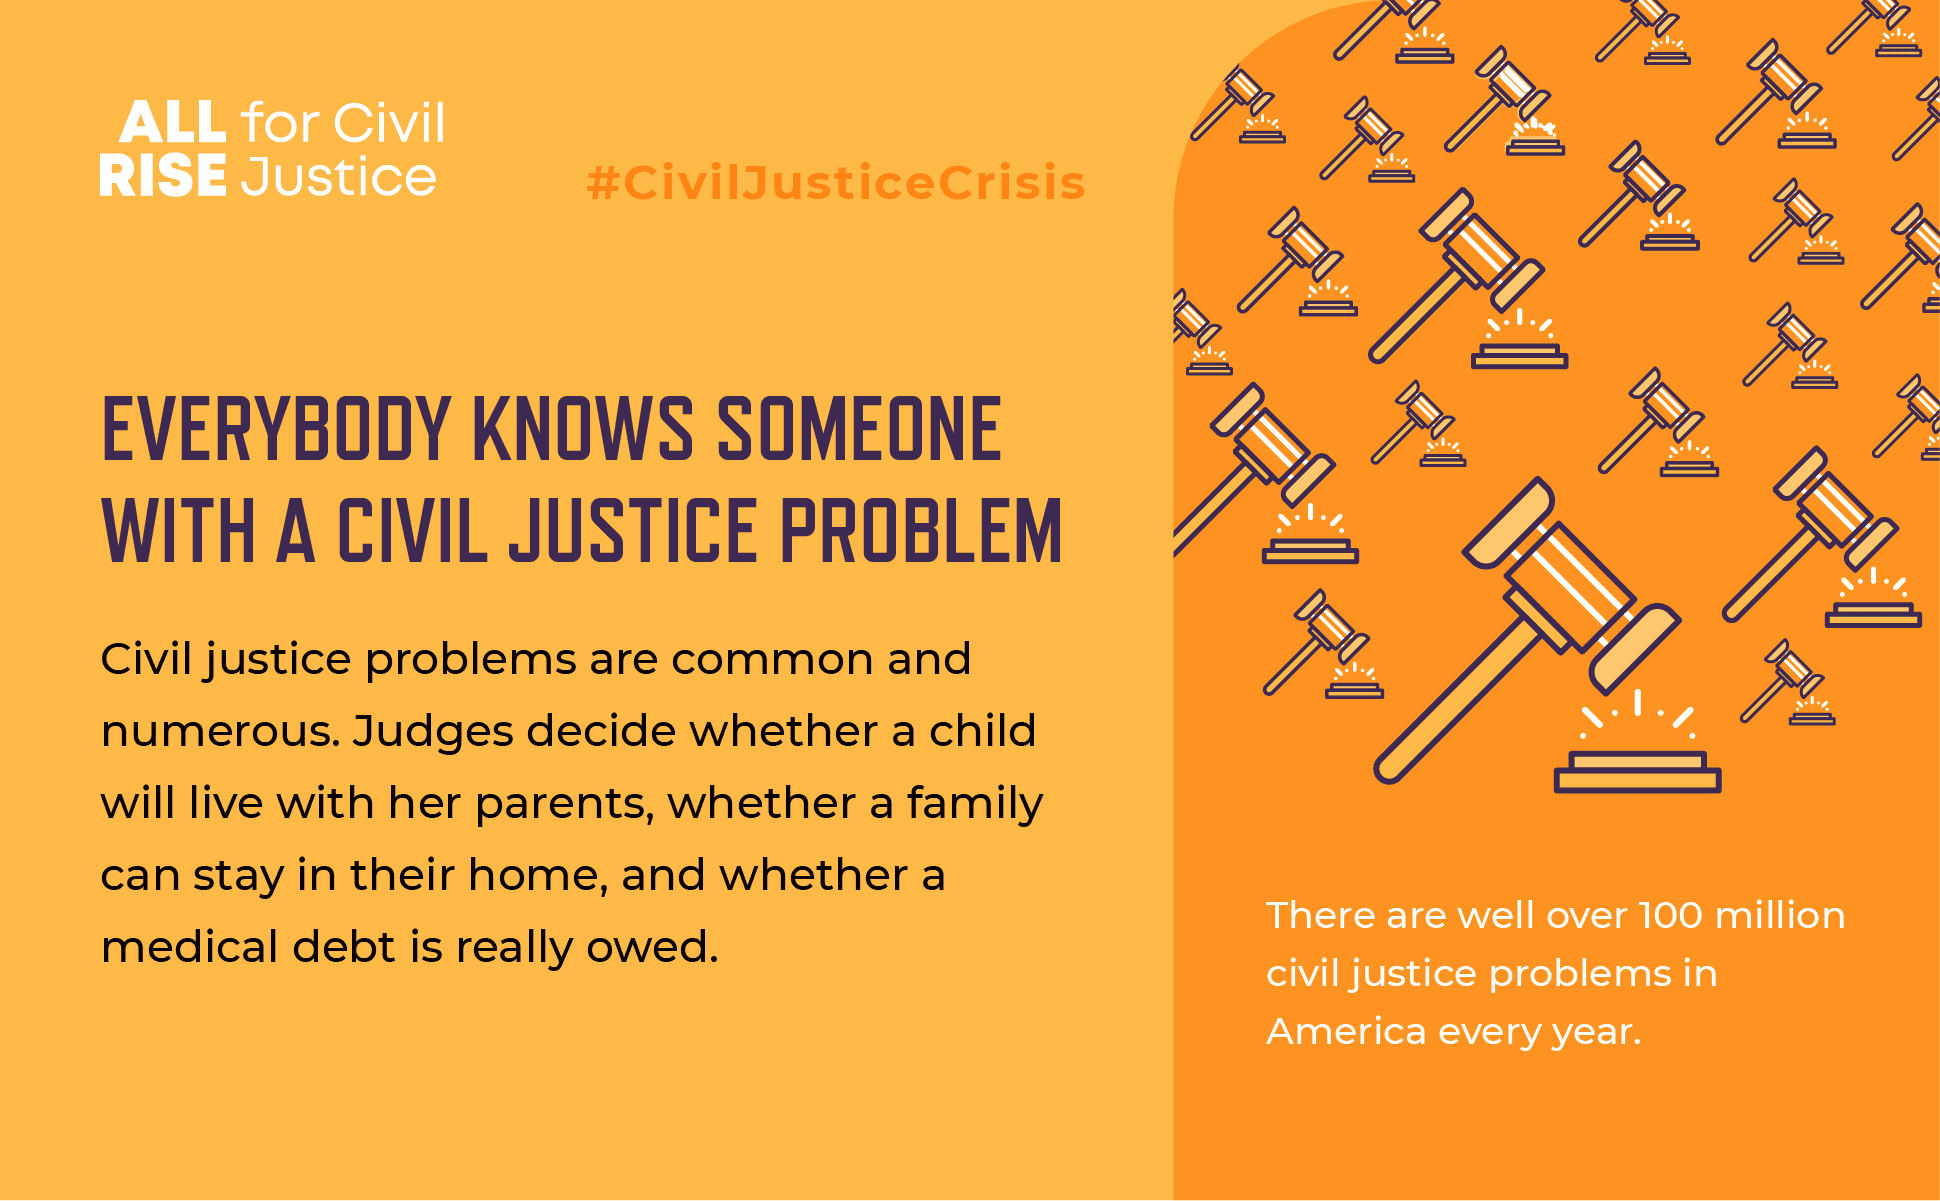 Everyone knows someone with a civil justice problem.